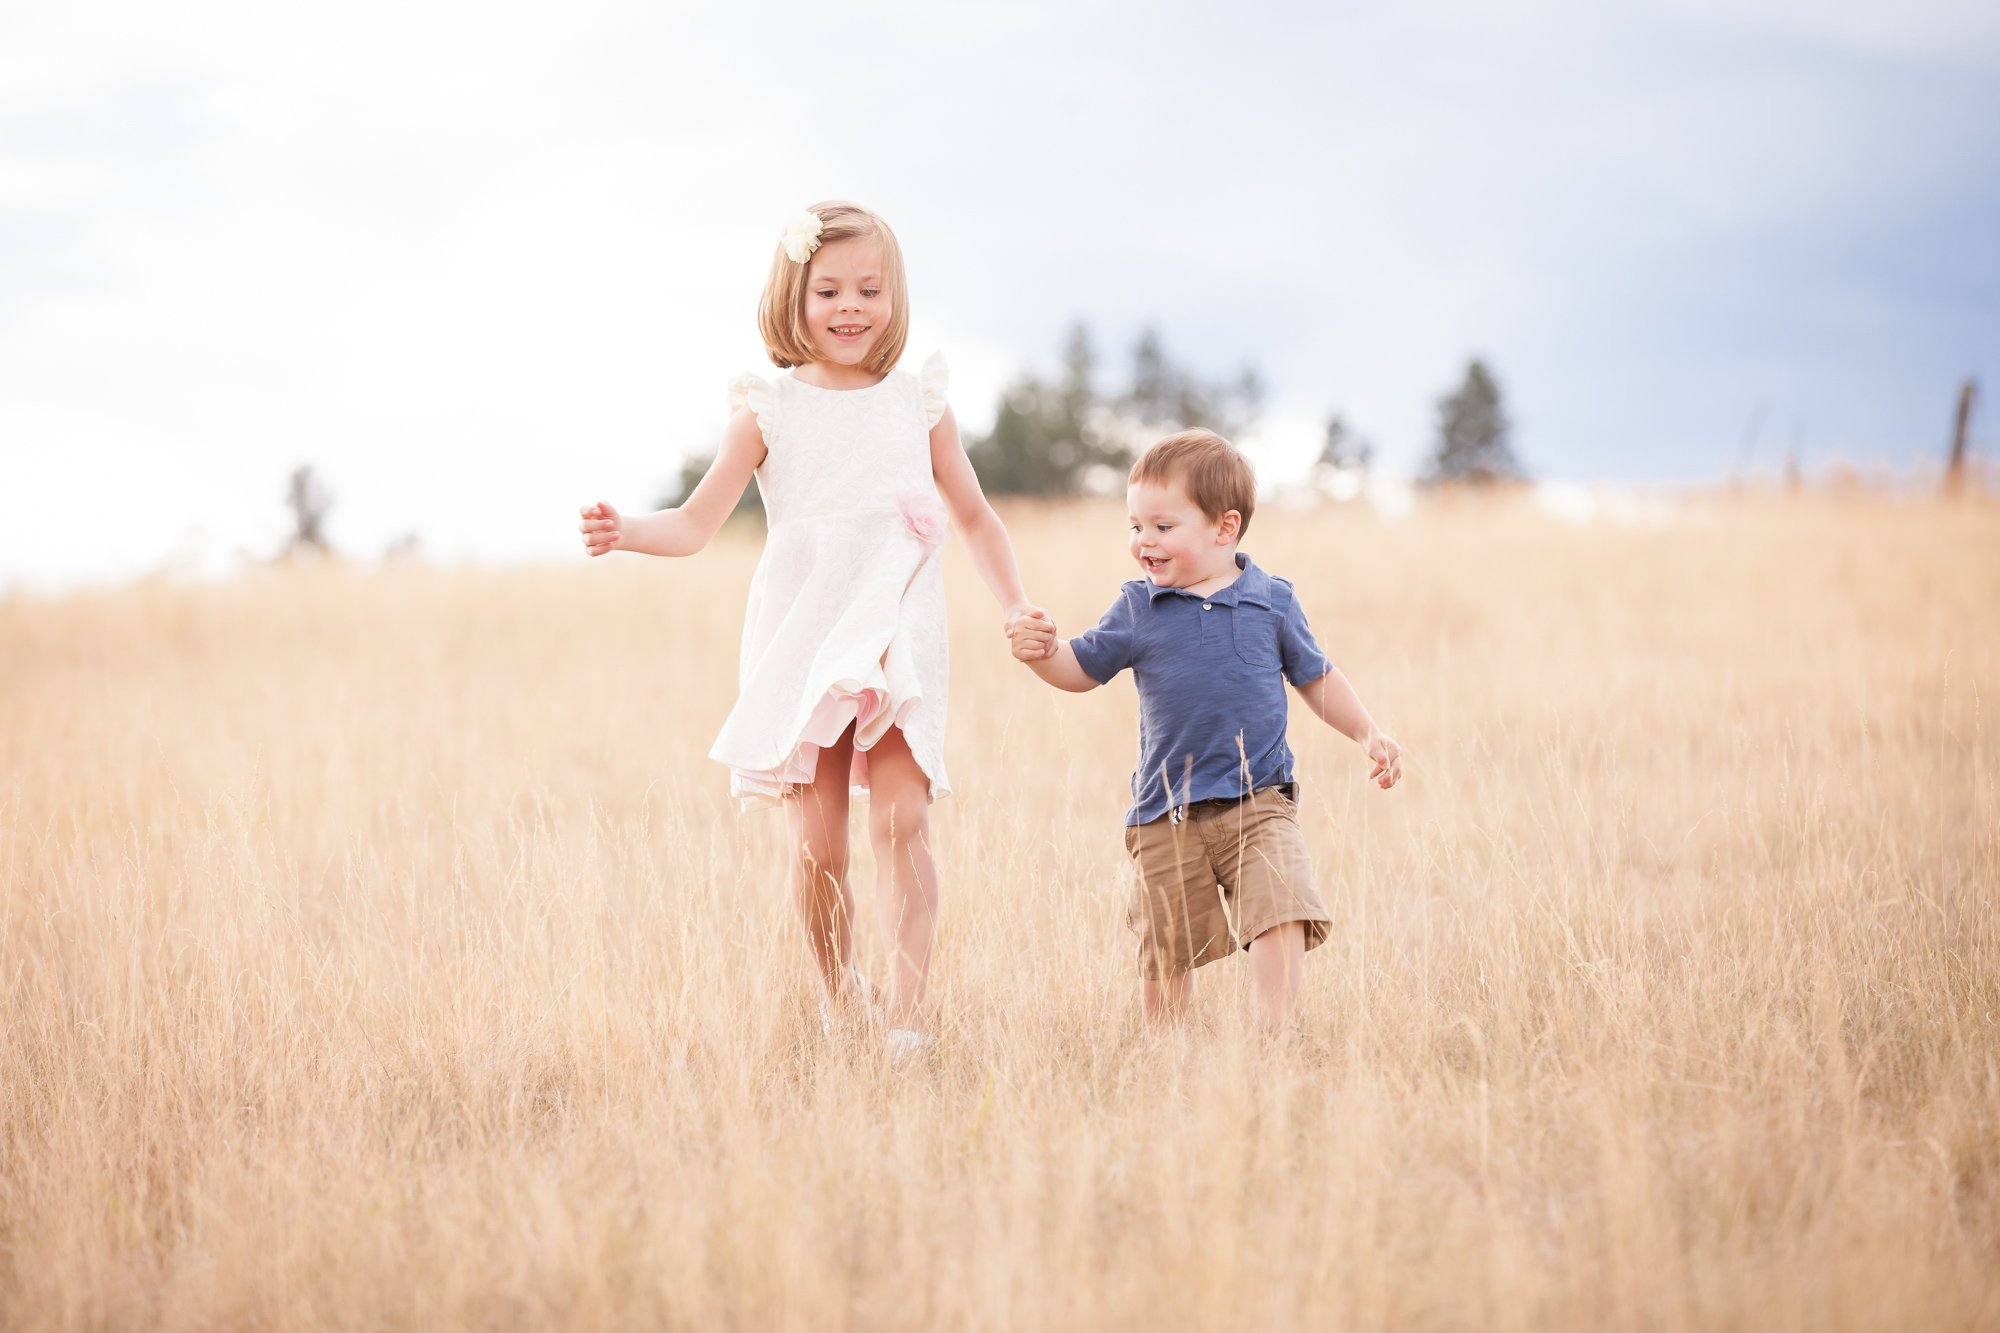 A brother and sister running hand in hand in the long grass